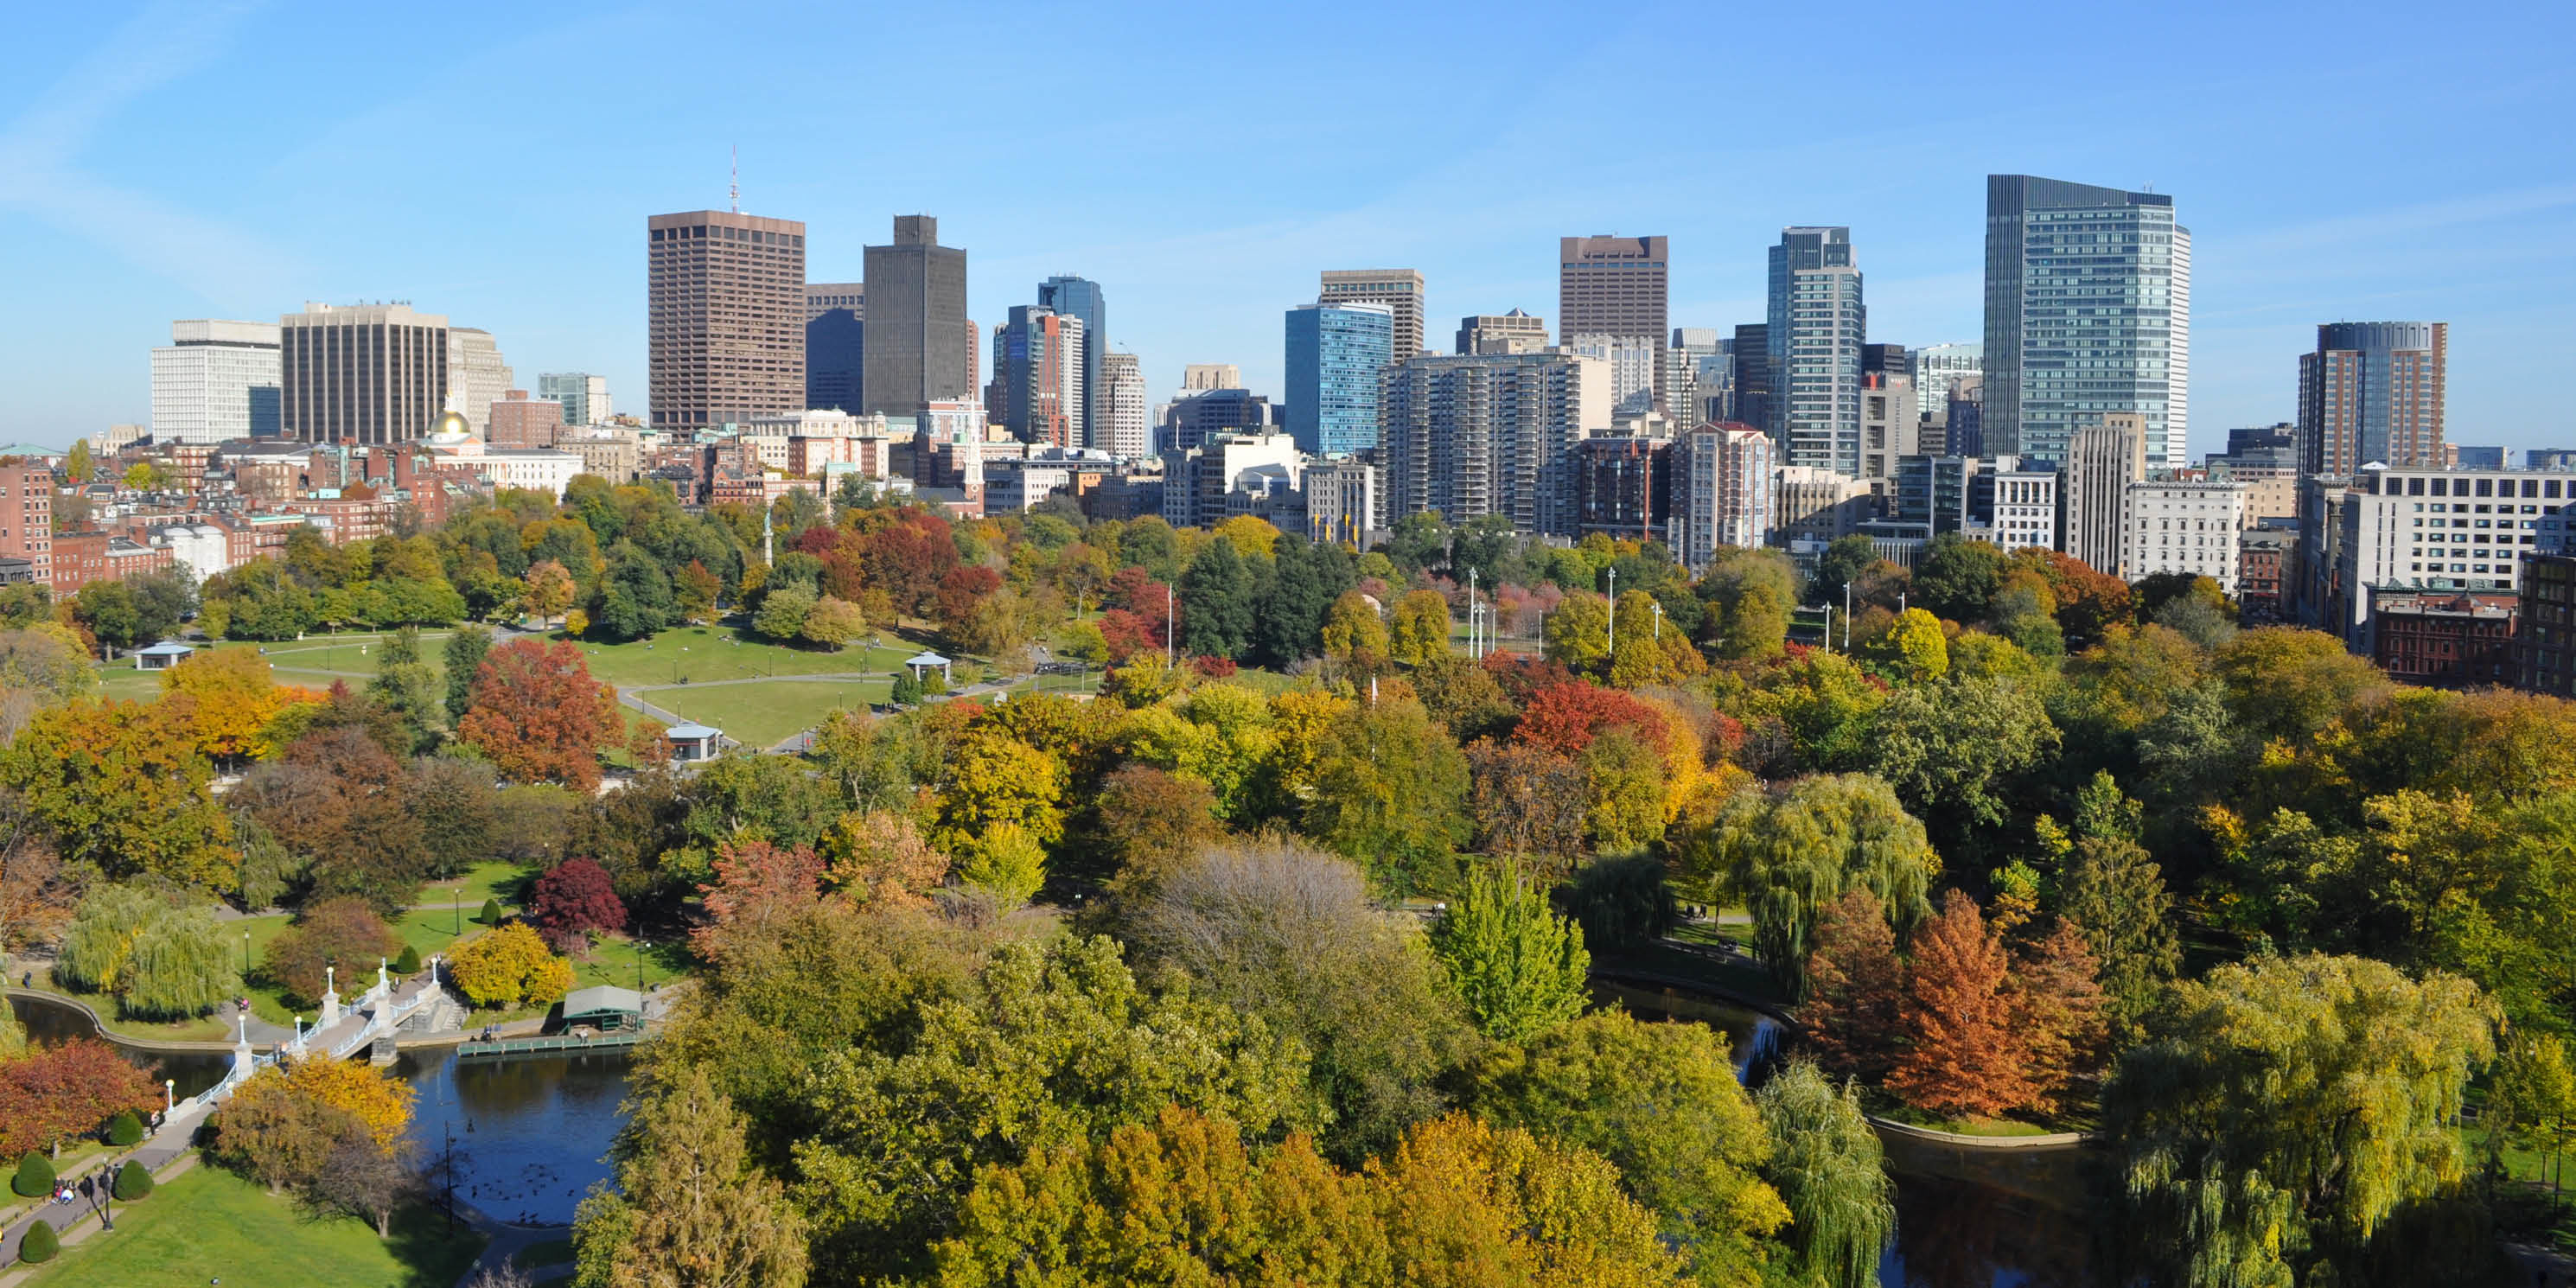 high angle view overlooking Boston Common